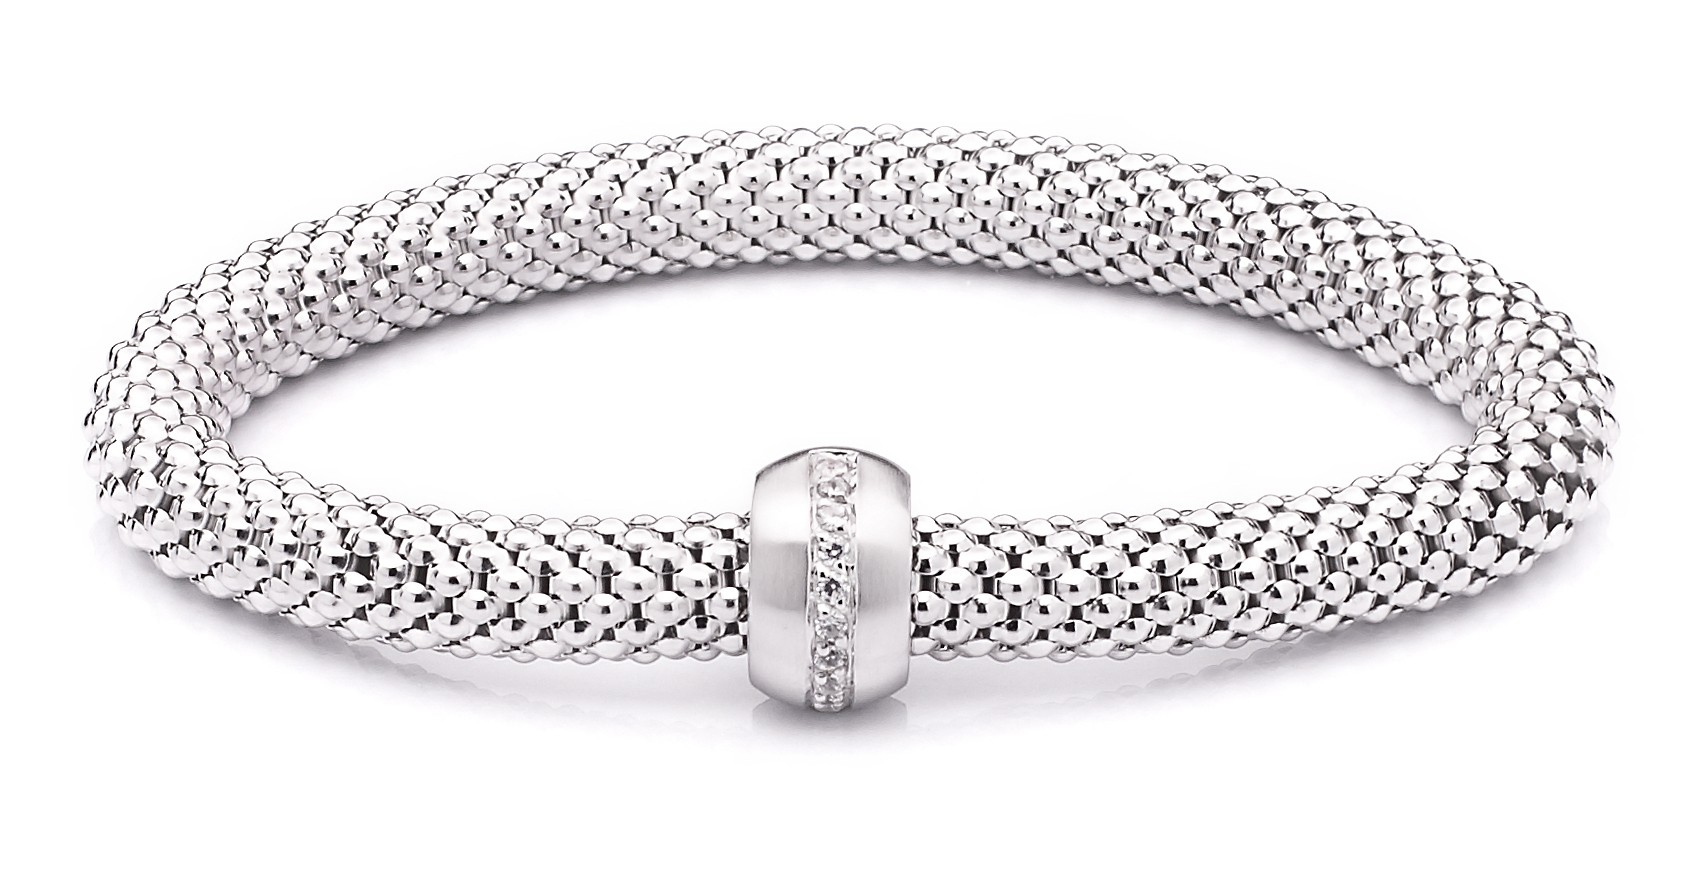 Armband silber  Viventy 768427 - Armband in Silber mit Zirkonia